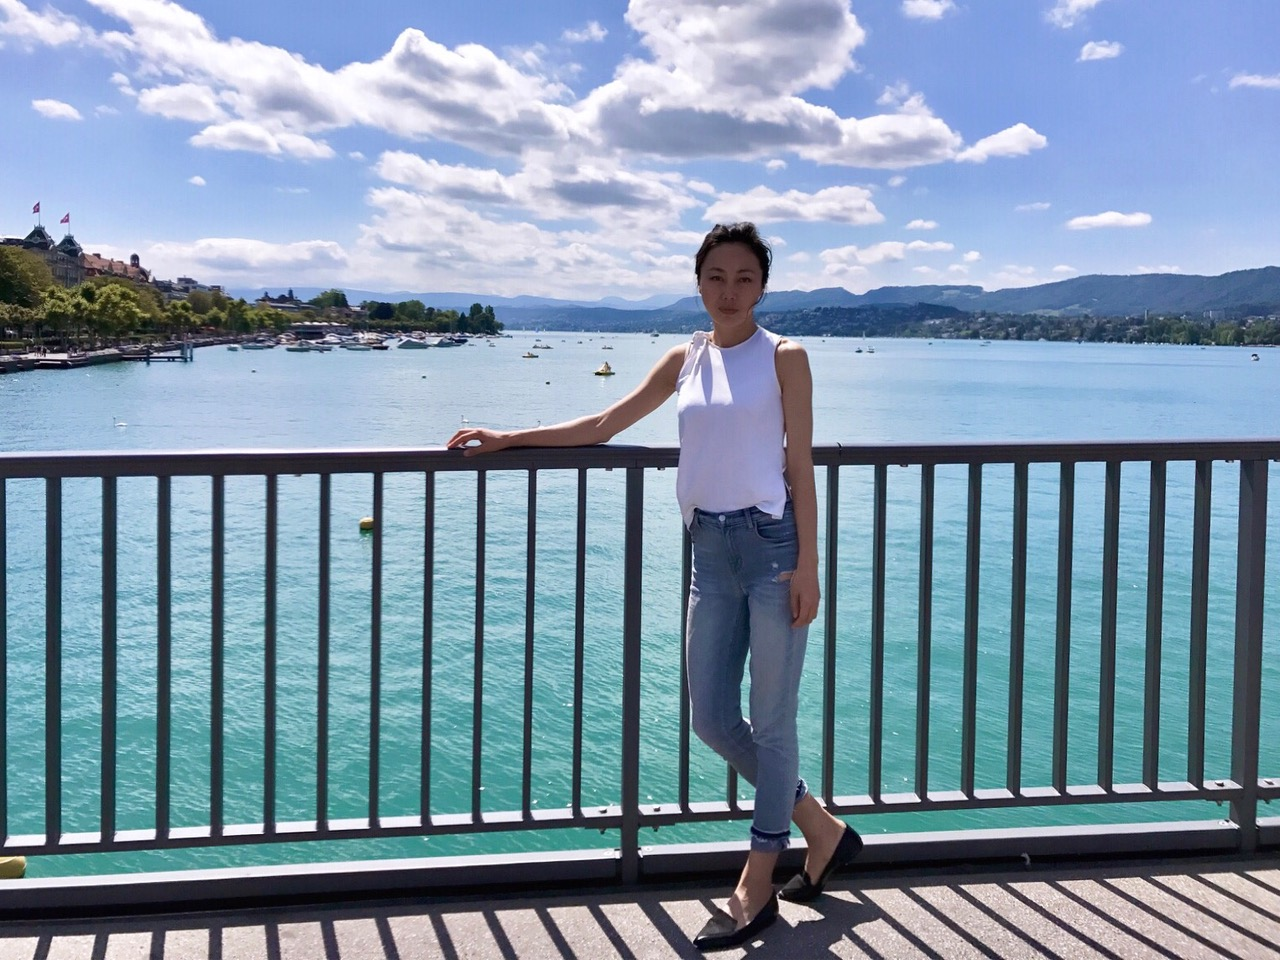 Xi Zhang enjoying the fresh air and the lake in Zurich.